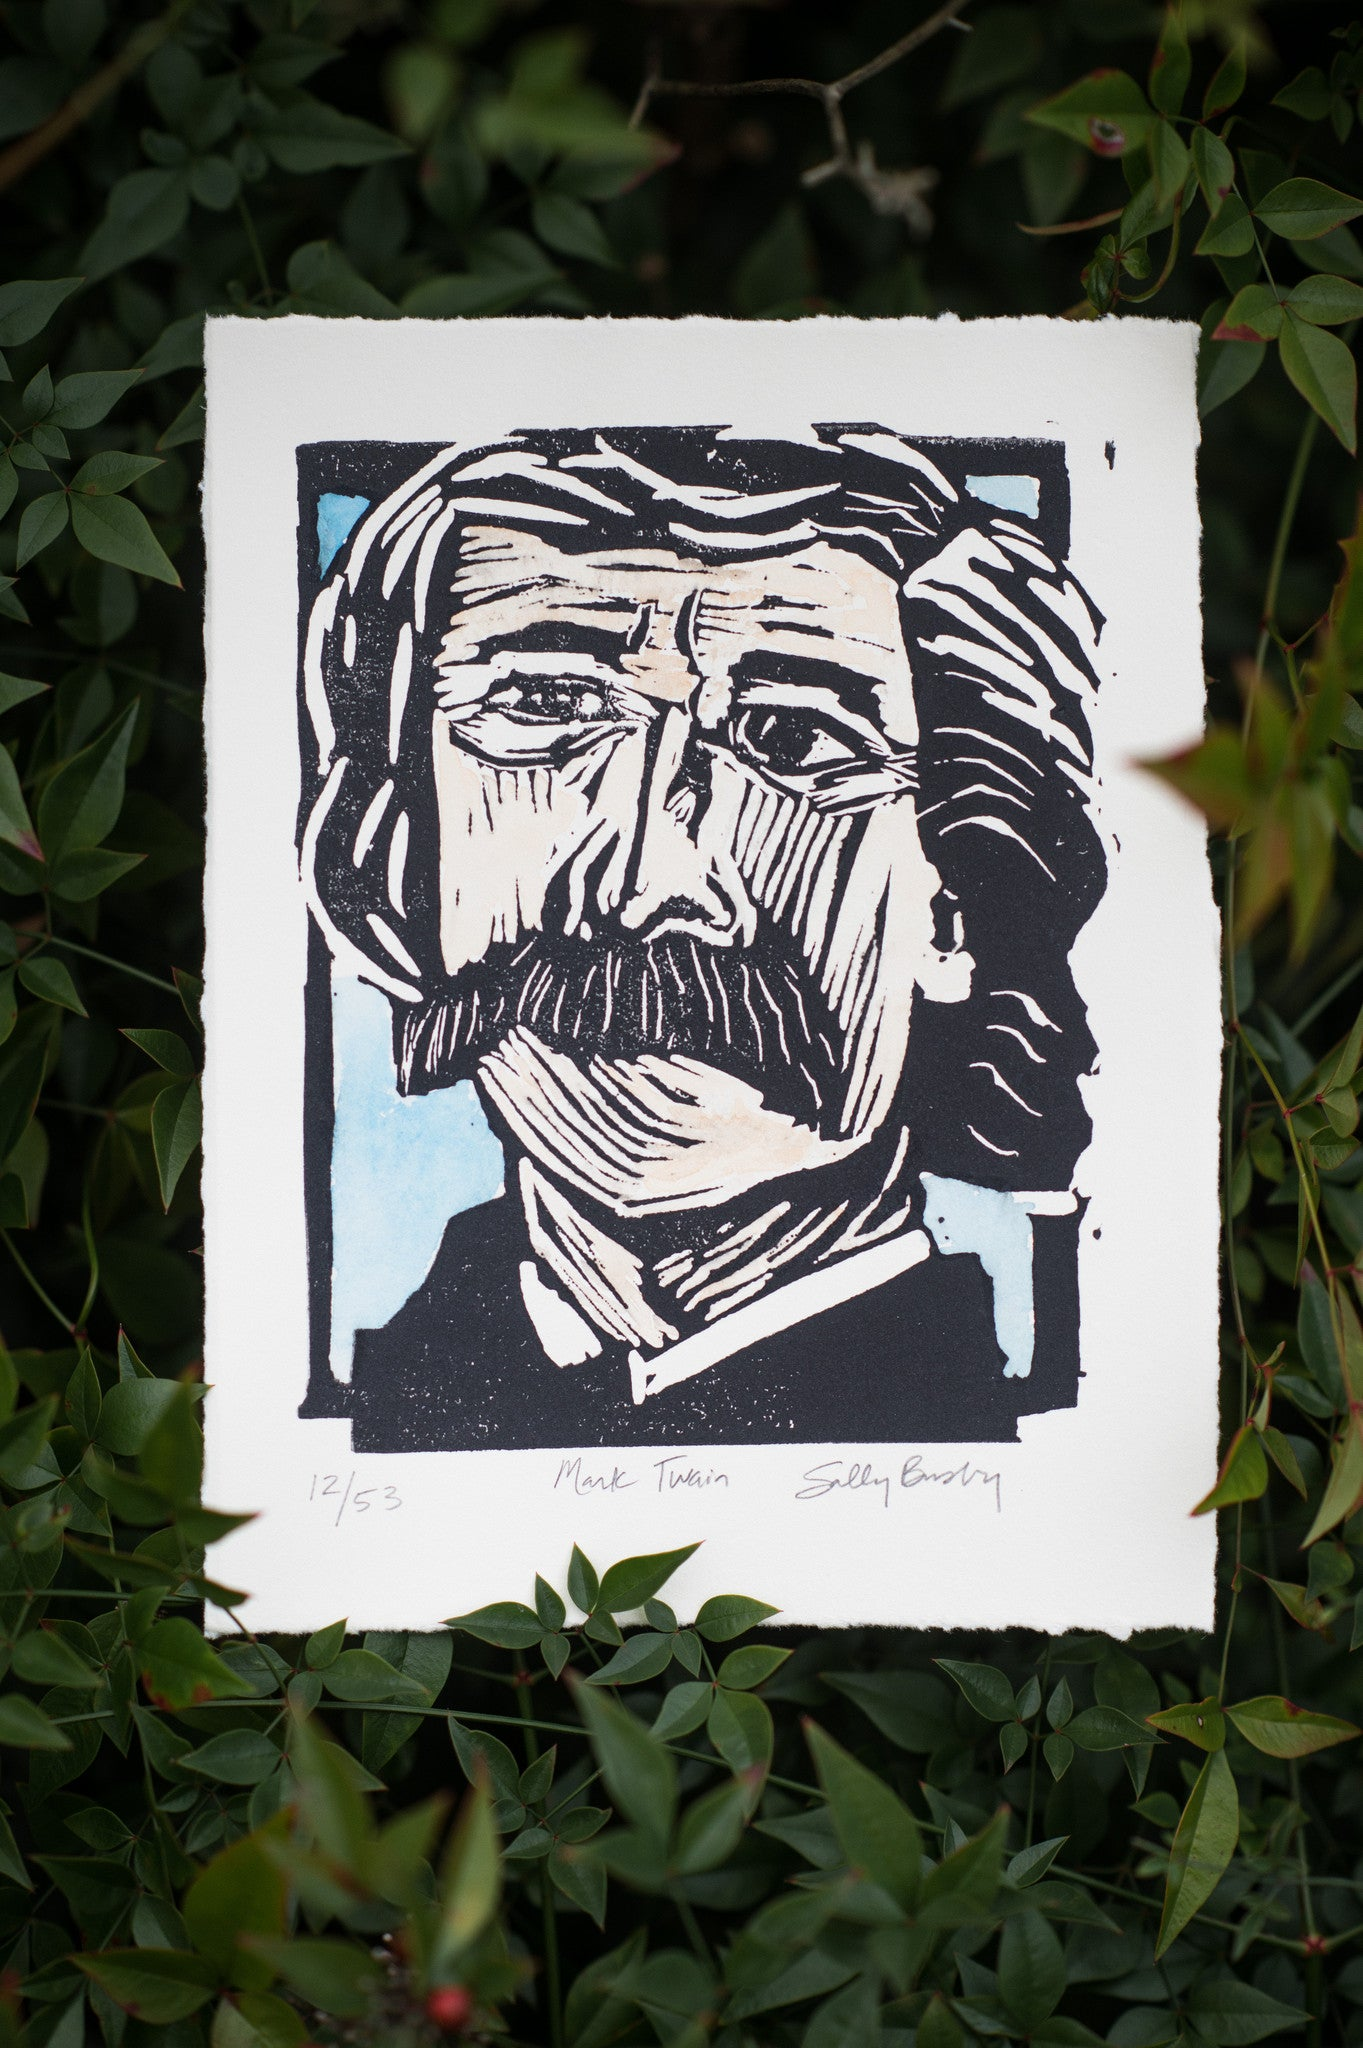 Mark Twain Hand Pulled Linocut watercolored colored limited edition art print Literary gift by Eastgrove studio